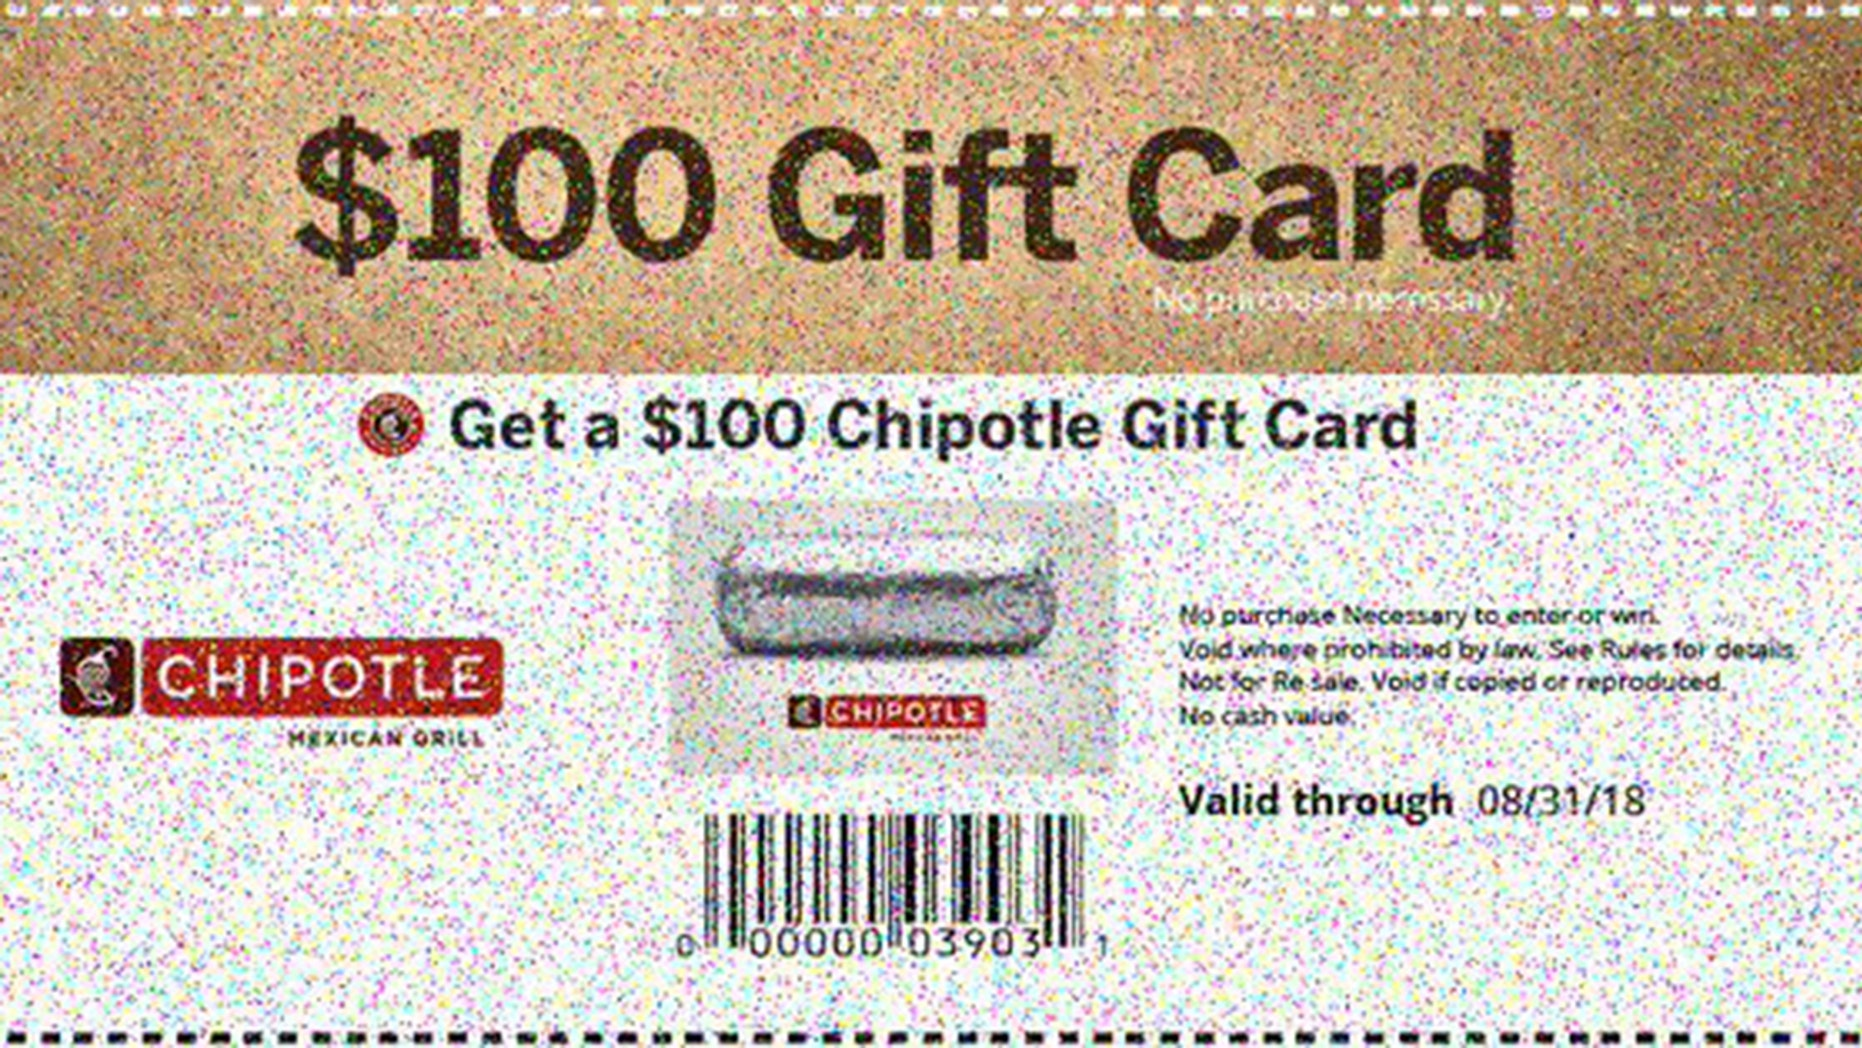 Many have fallen for a Chipotle gift card scam.